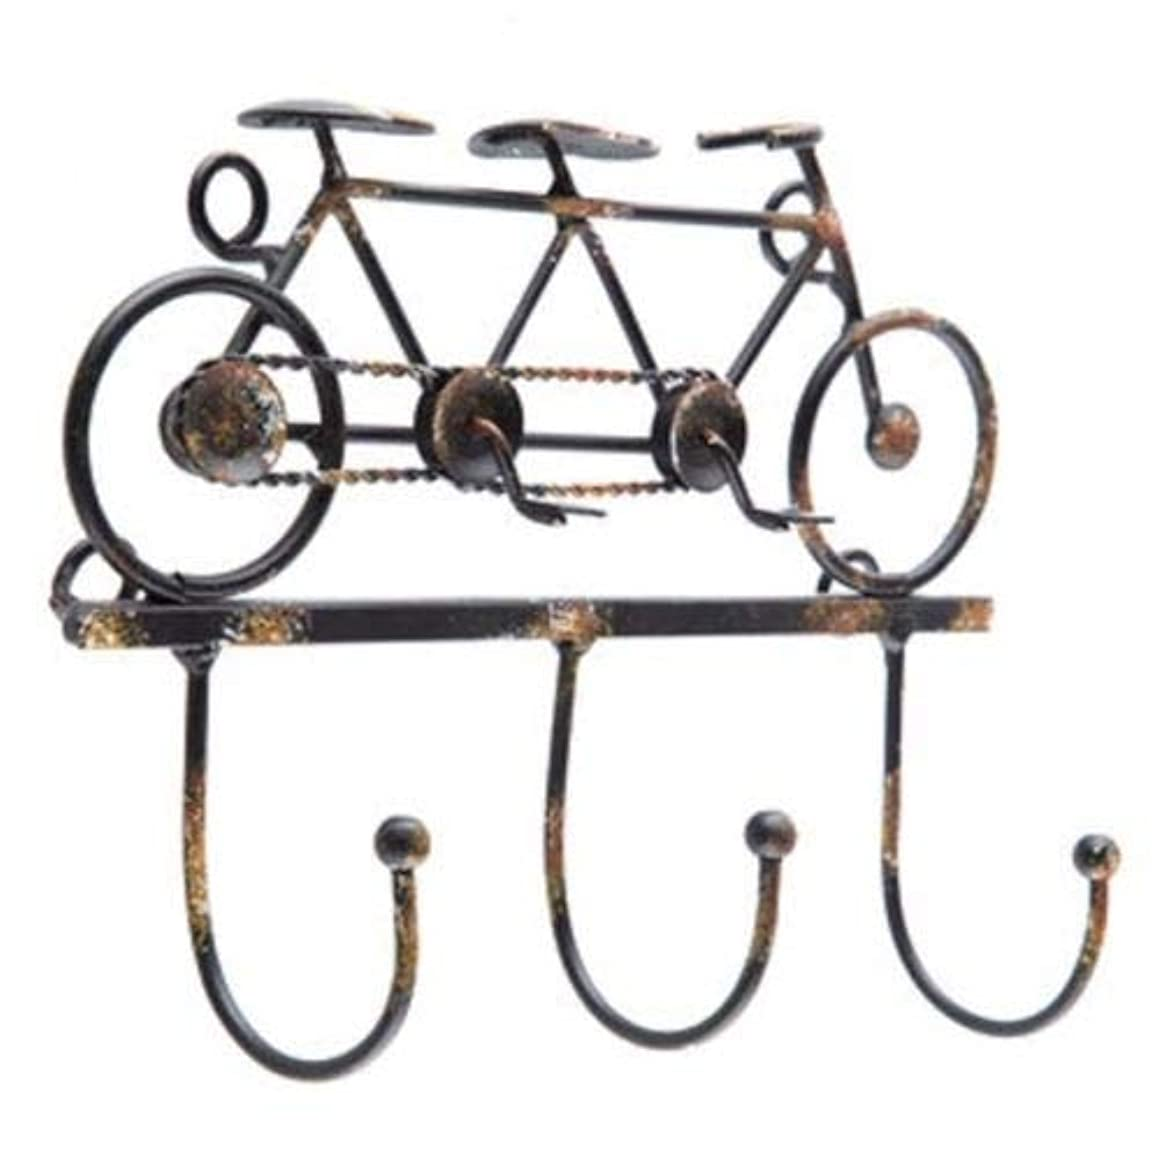 Ideal for Hanging Tandem Bicycle Metal Wall Hook Keys Hooks Home Wall Decor